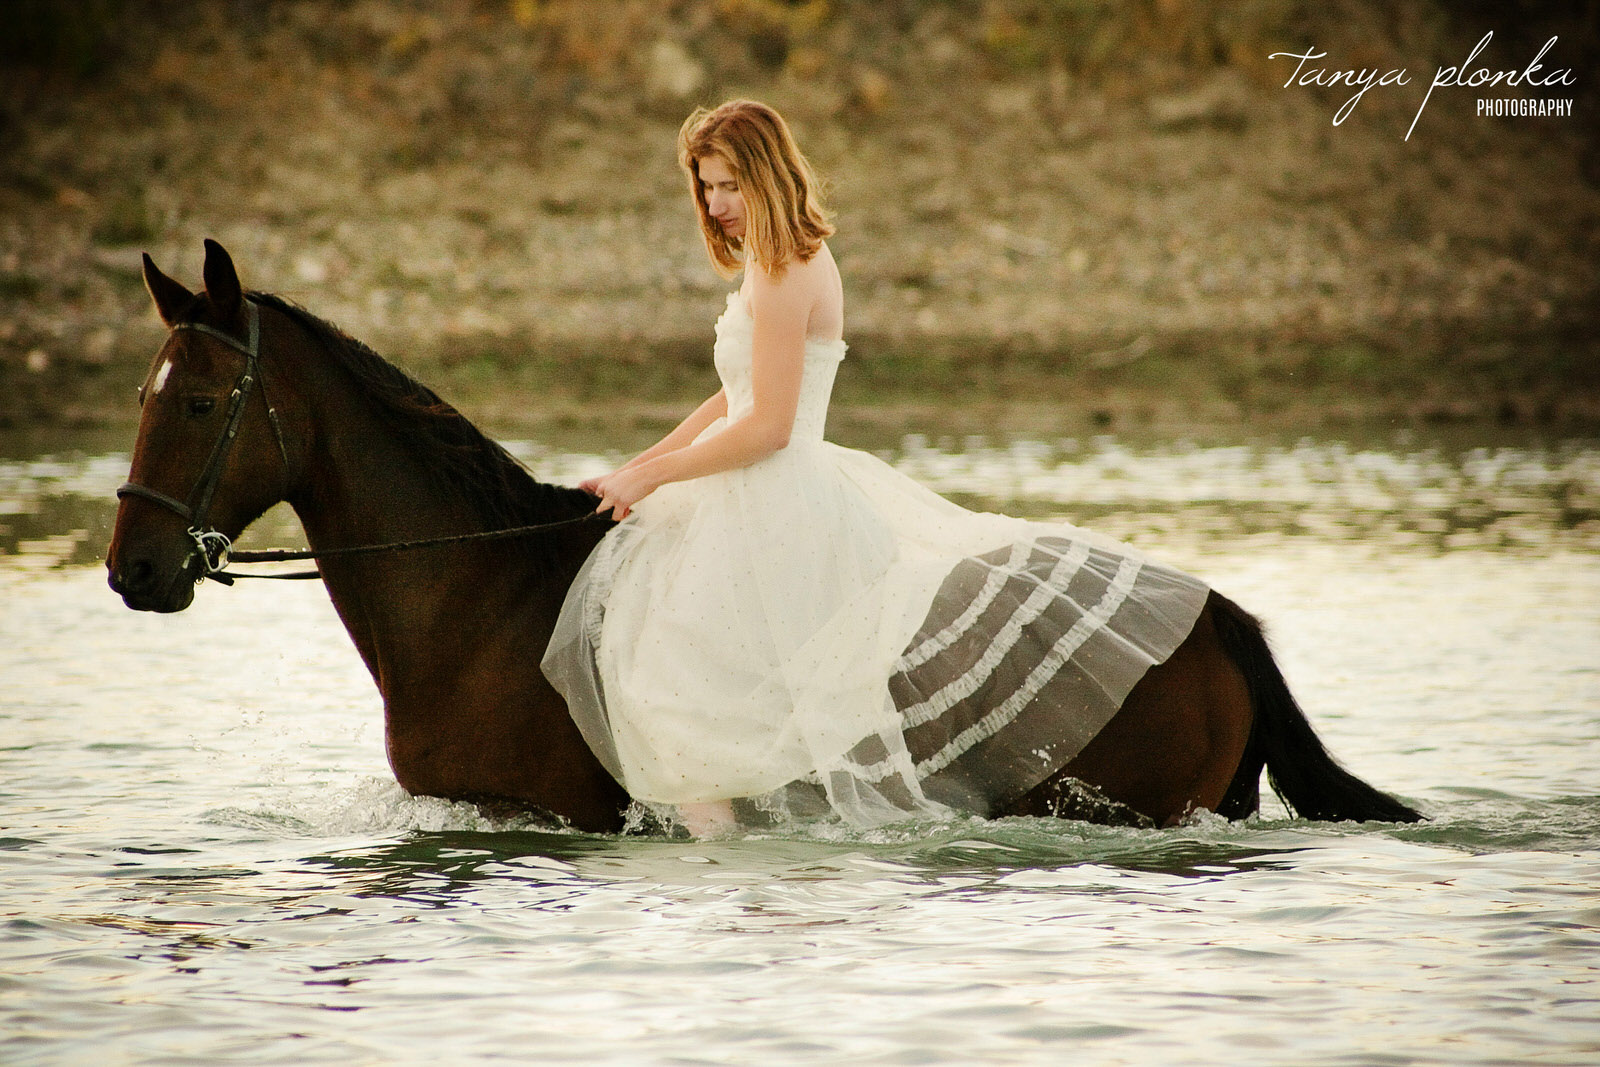 woman in white dress rides brown horse through the river